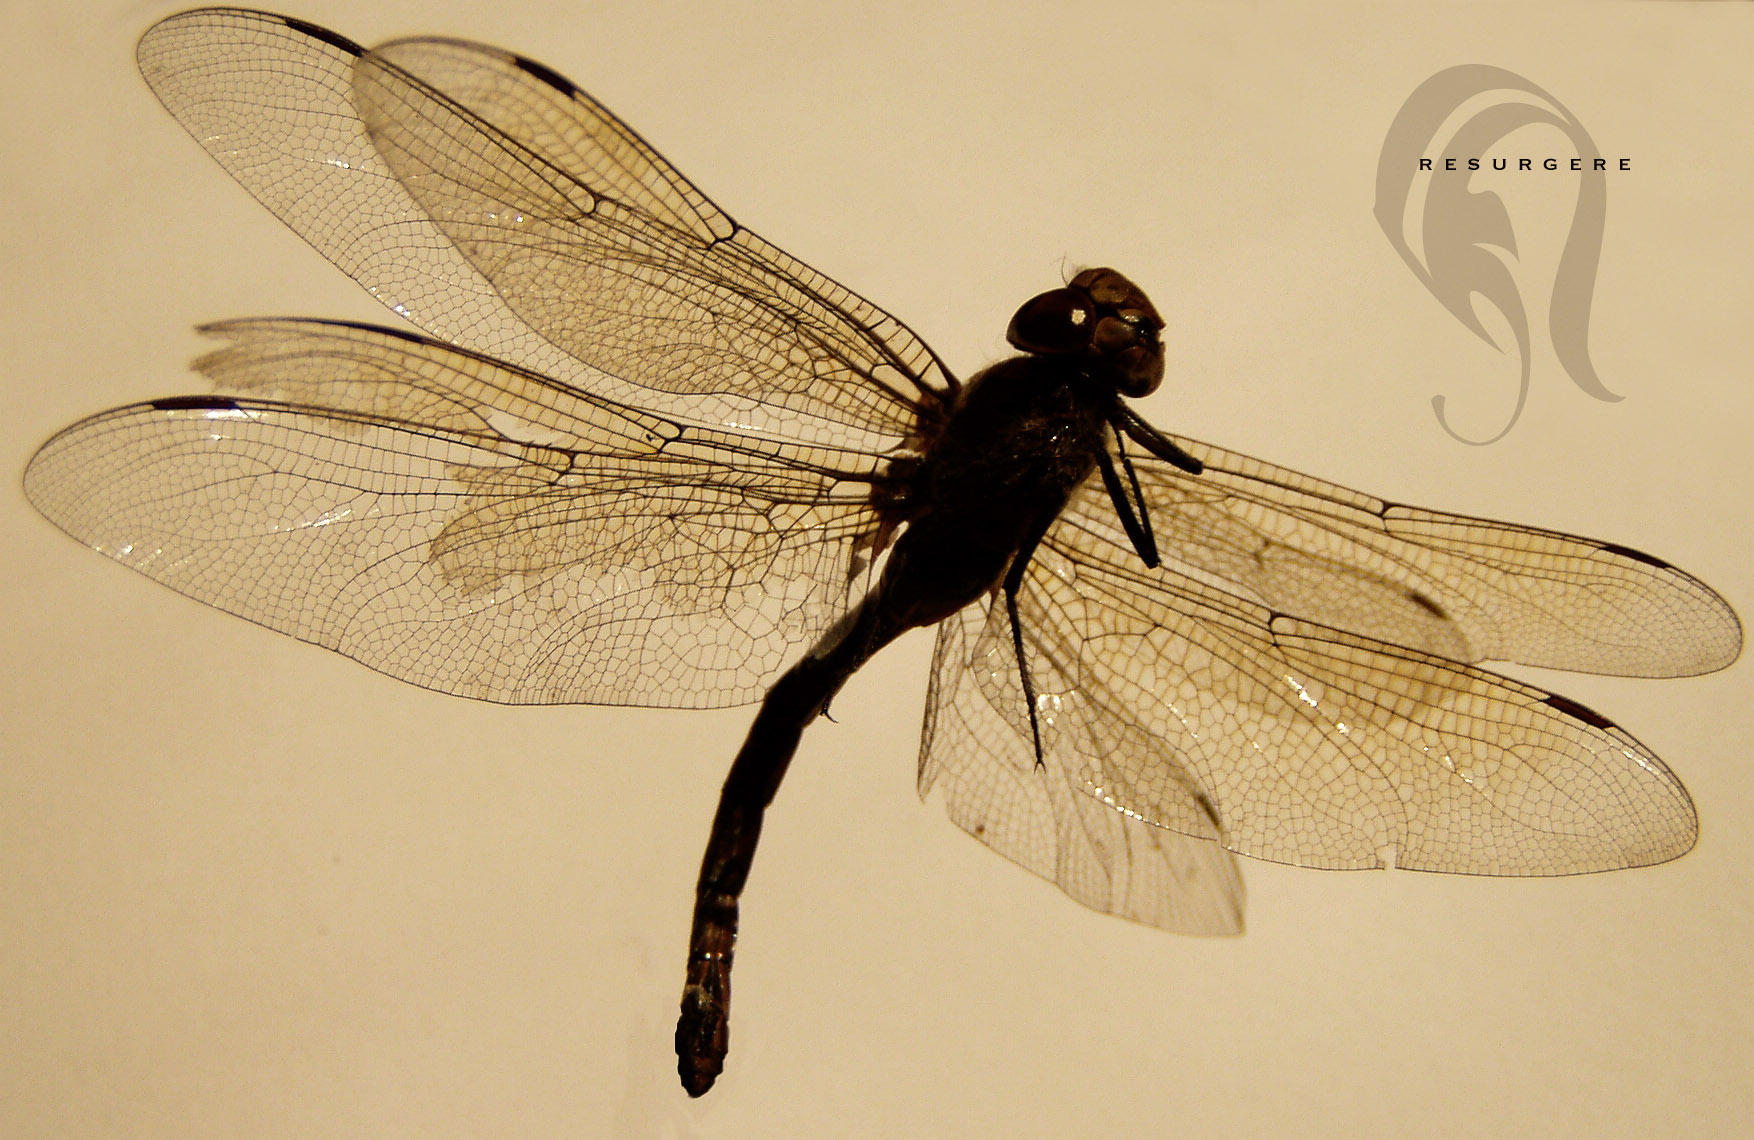 Photo - DragonFly - 1624 by resurgere